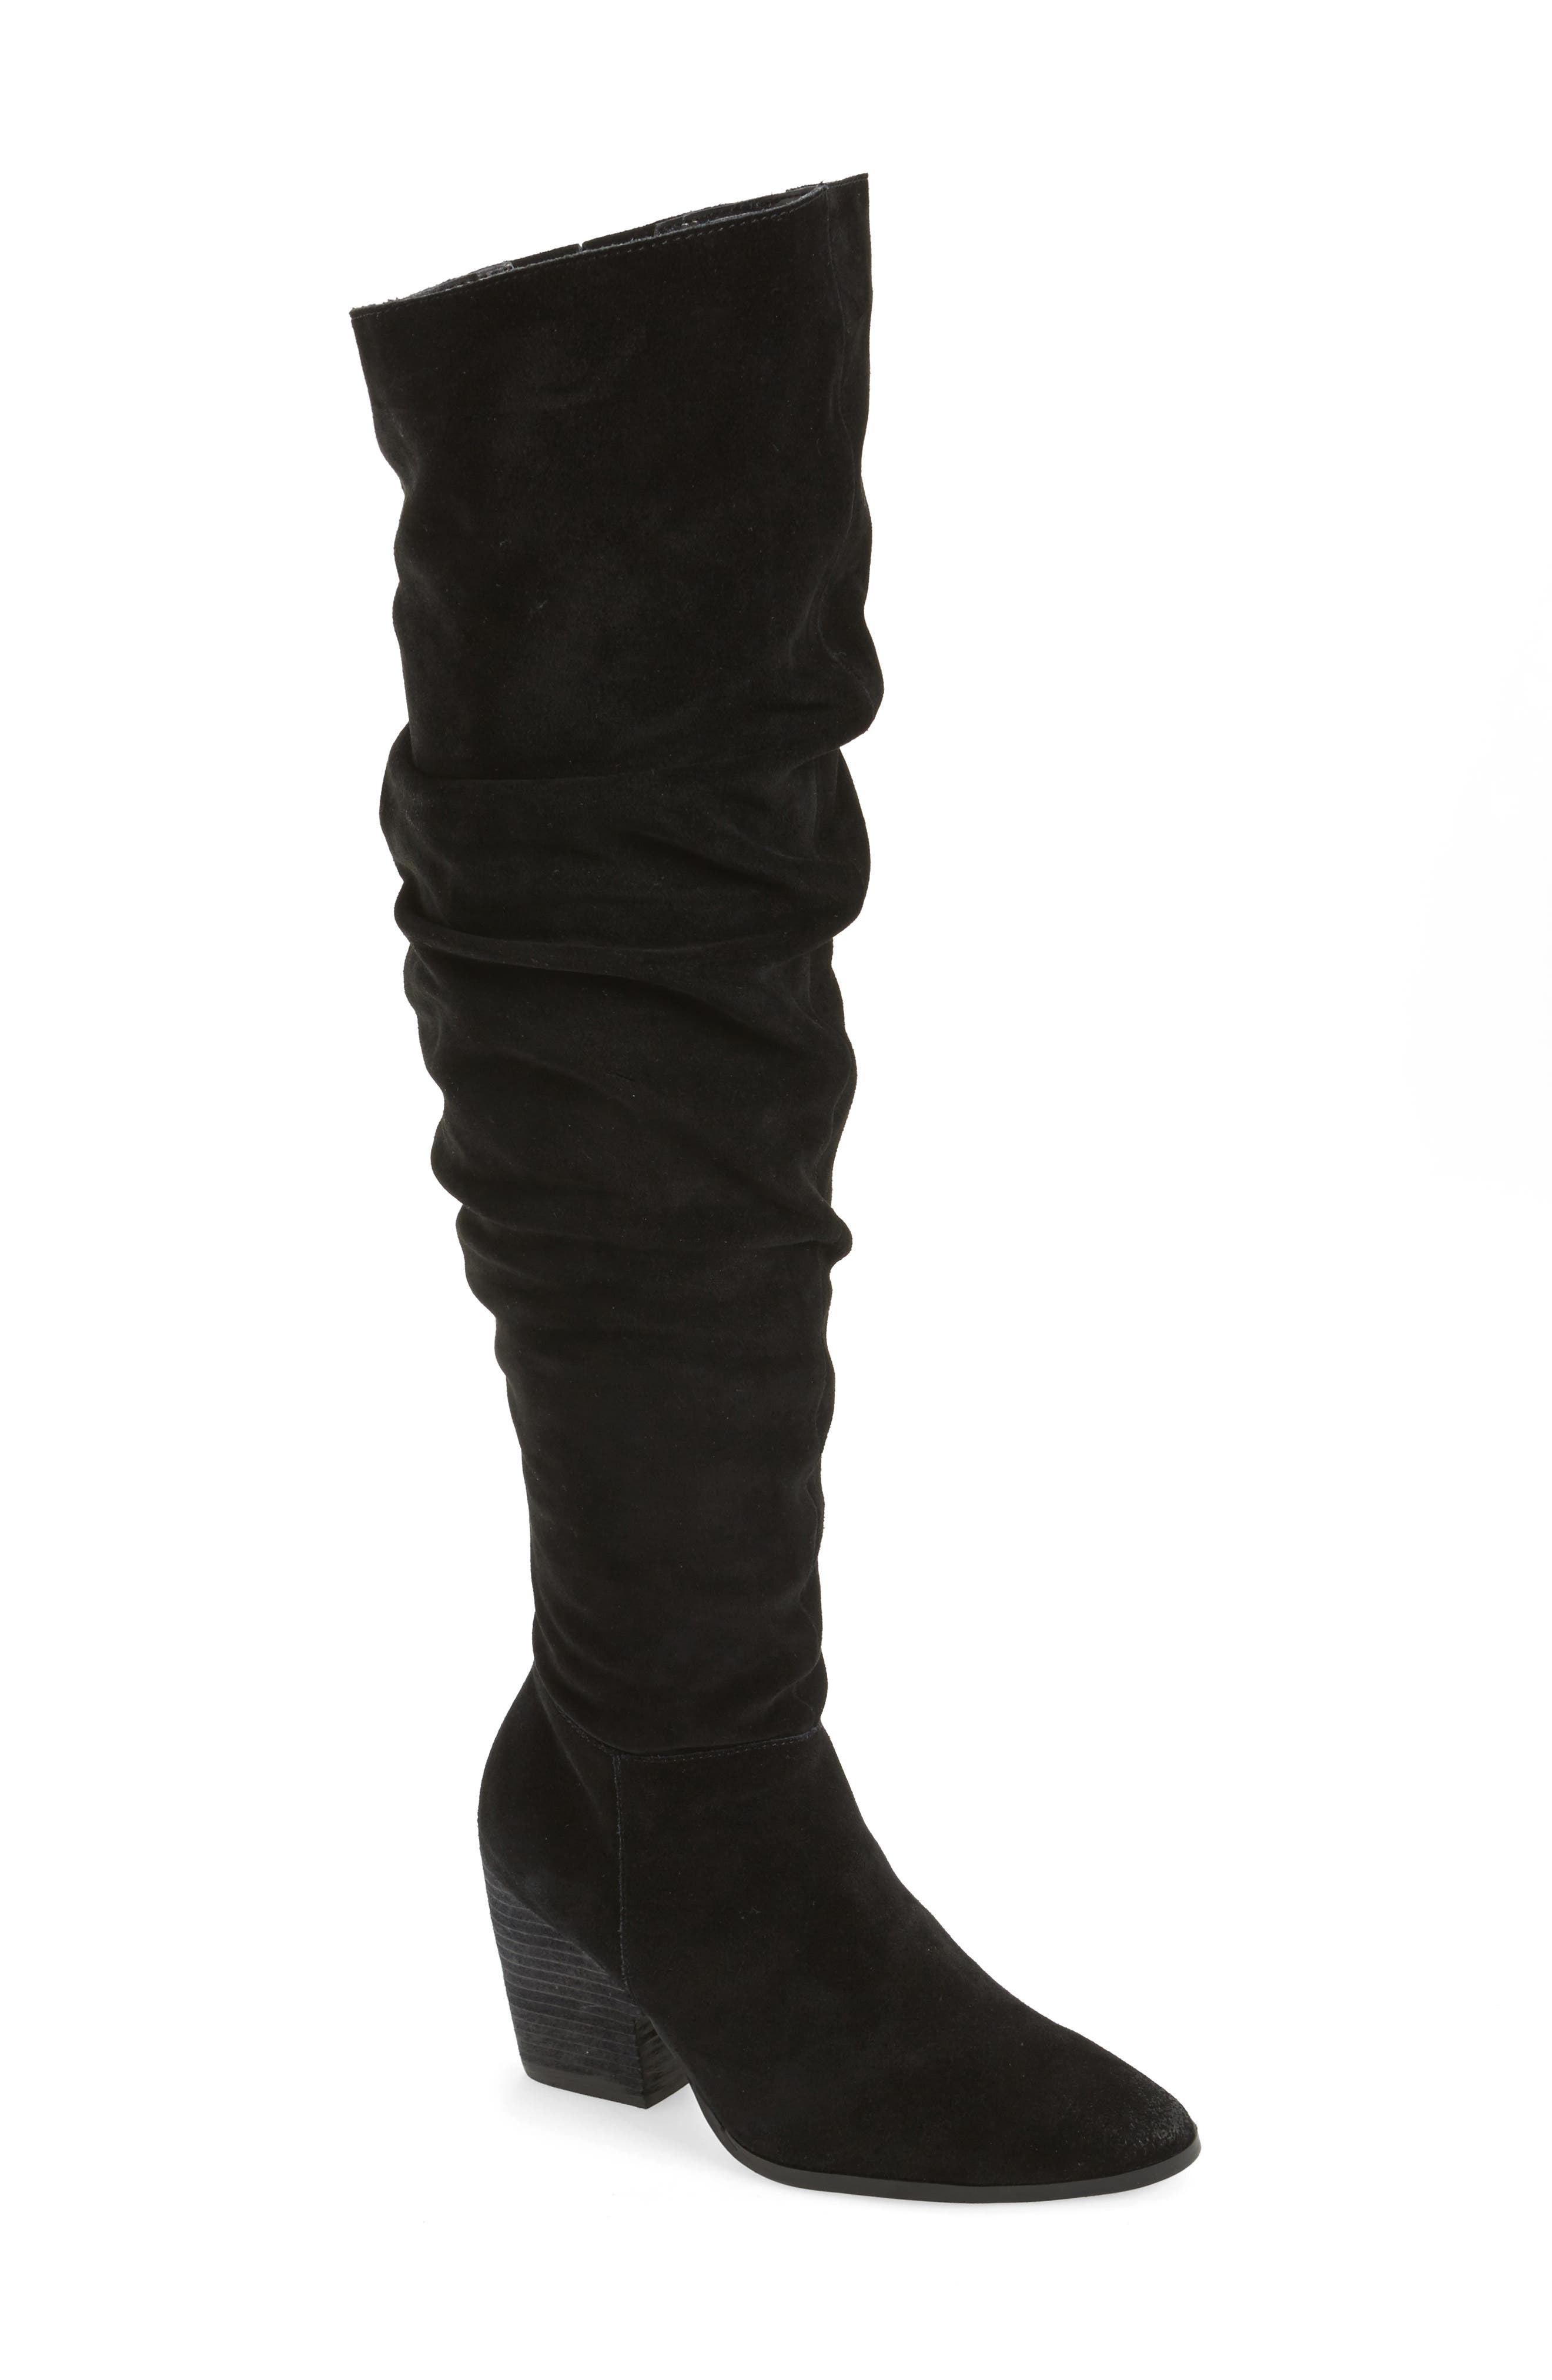 Noelle Over the Knee Boot,                         Main,                         color, 001